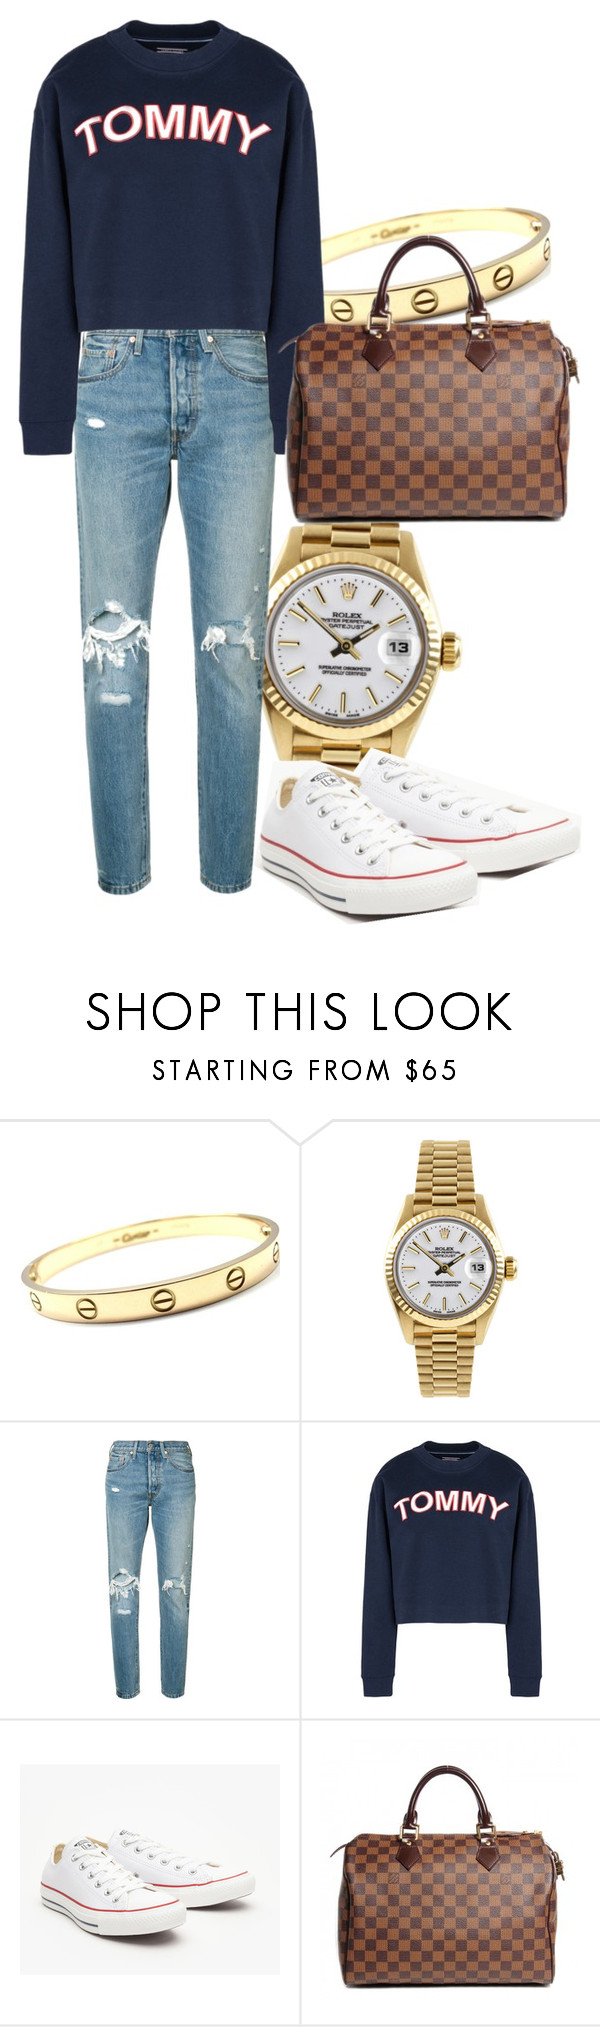 """Untitled #2004"" by fashionistaannie ❤ liked on Polyvore featuring Cartier, Rolex, Levi's, Tommy Hilfiger, Converse and Louis Vuitton"